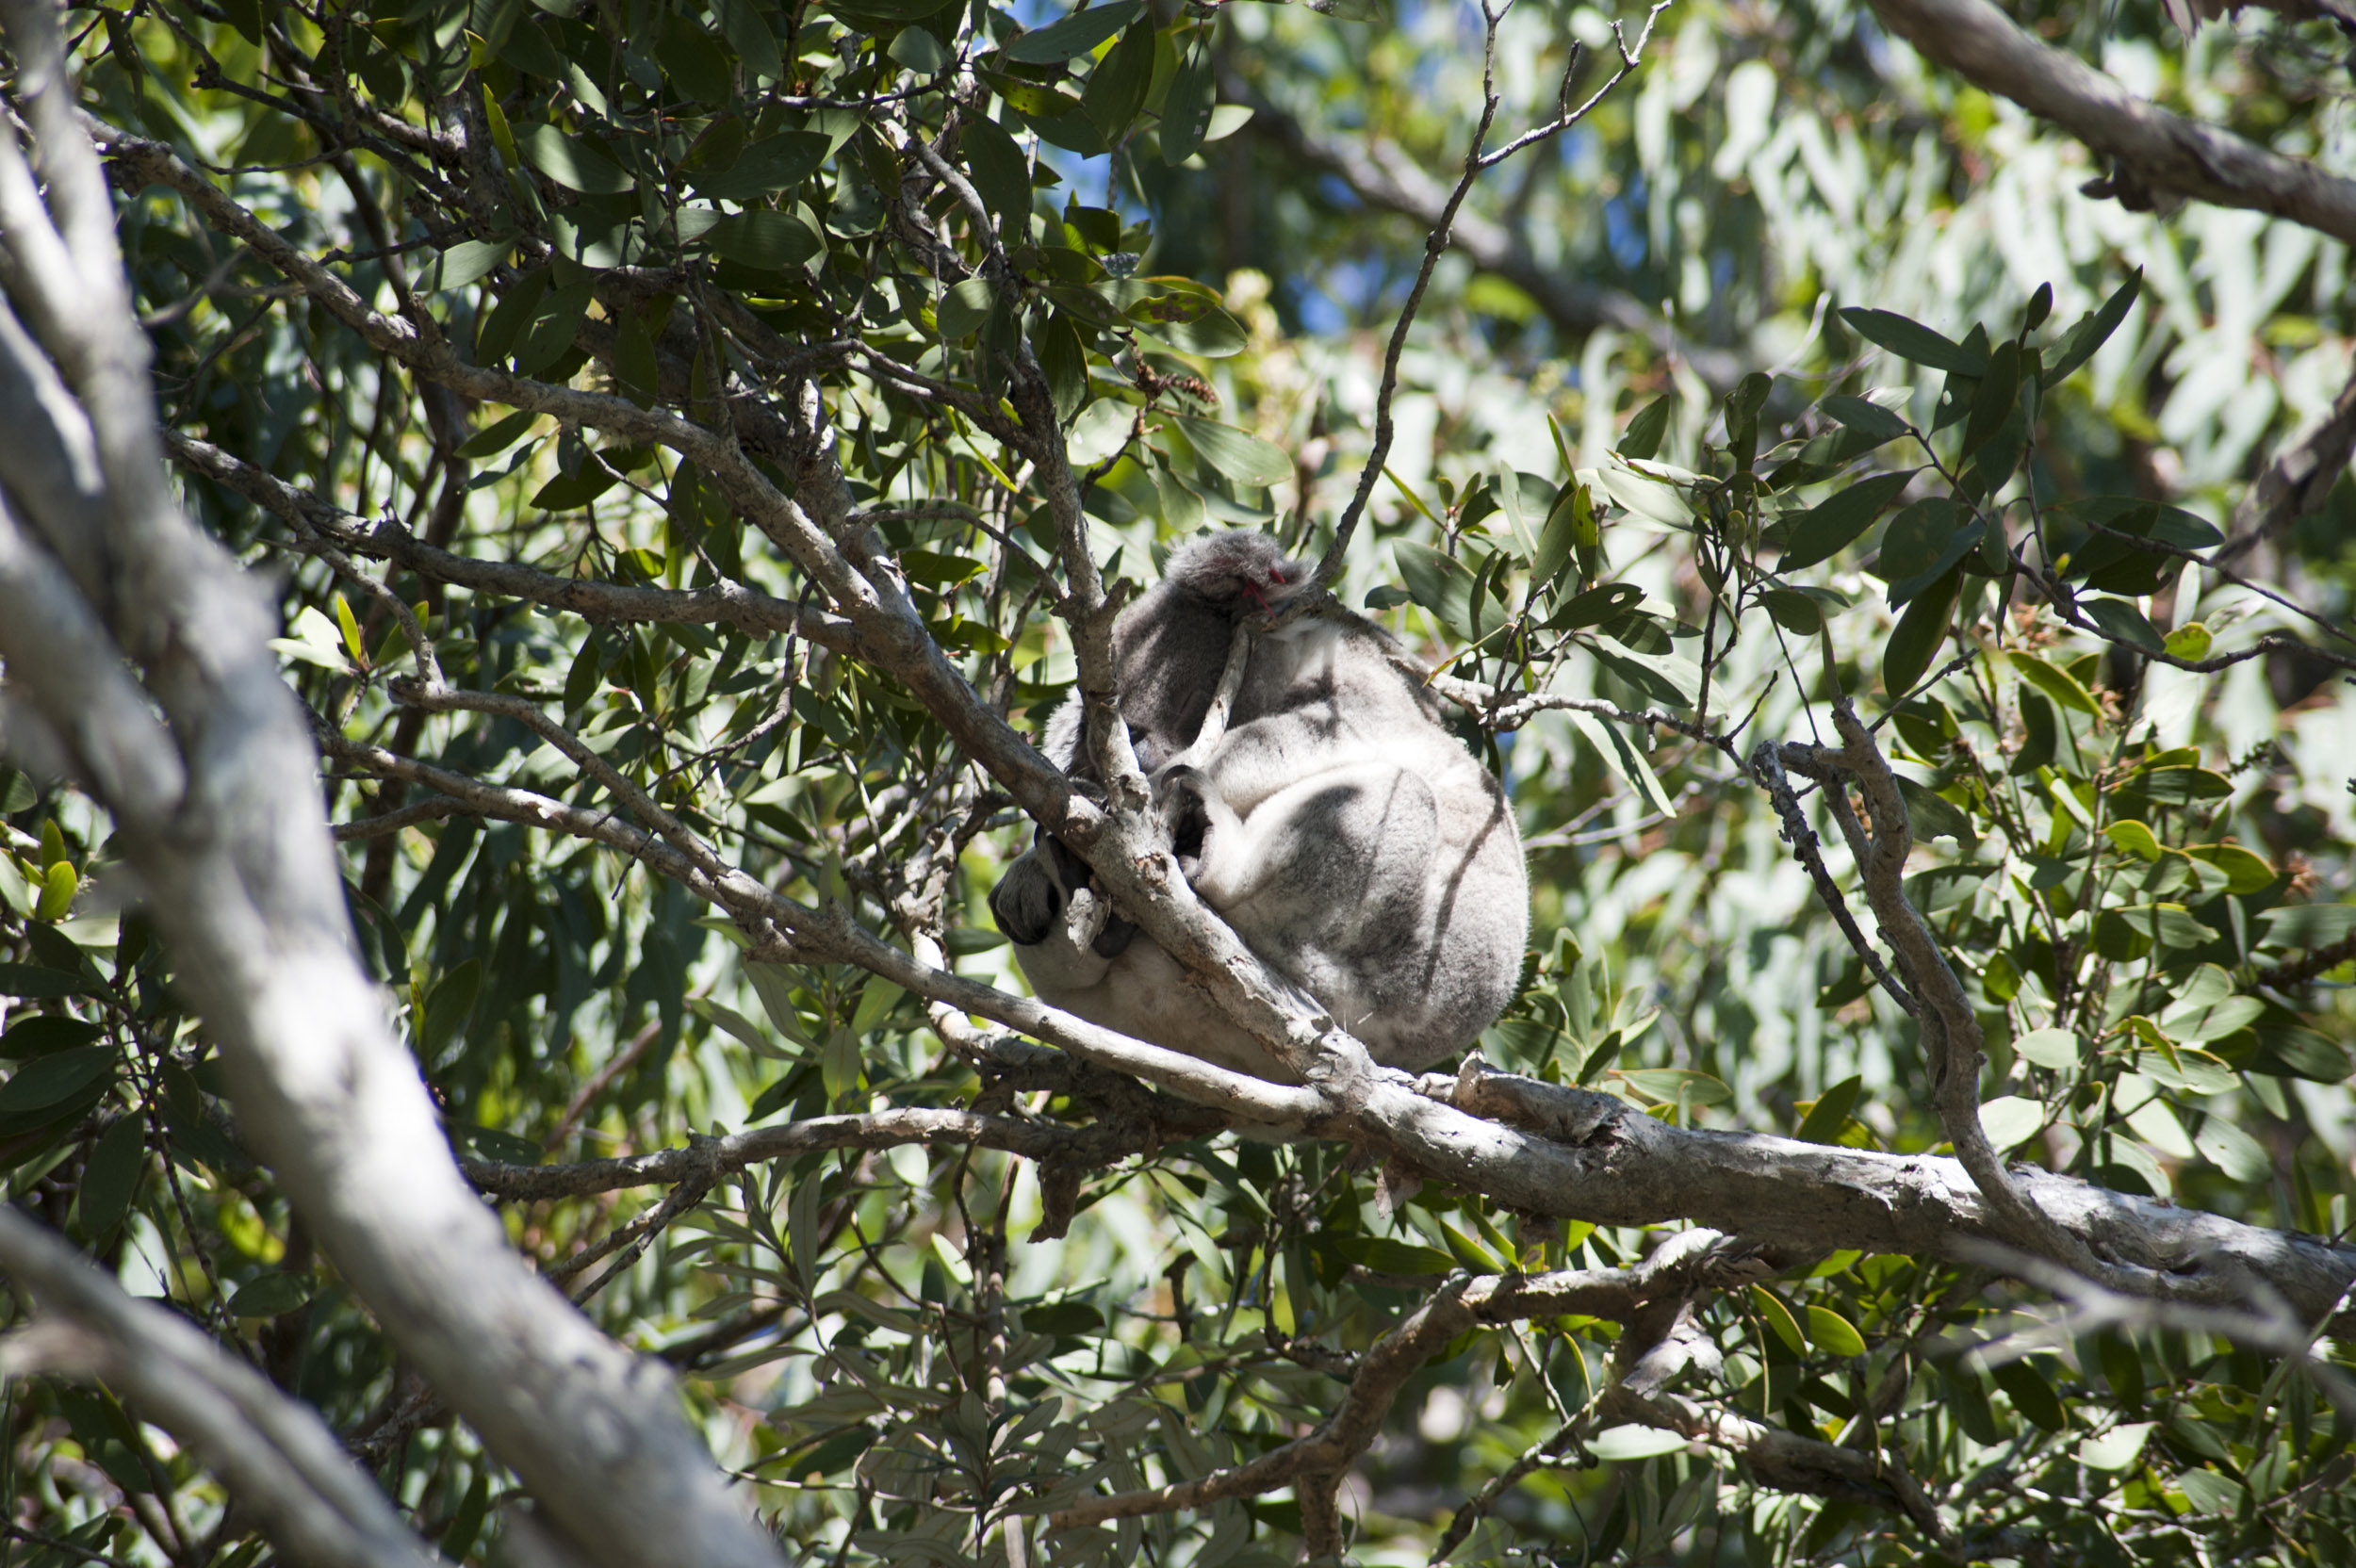 Koala sitting perched on a branch in a gum or eucalyptus tree in Australia viewed from below